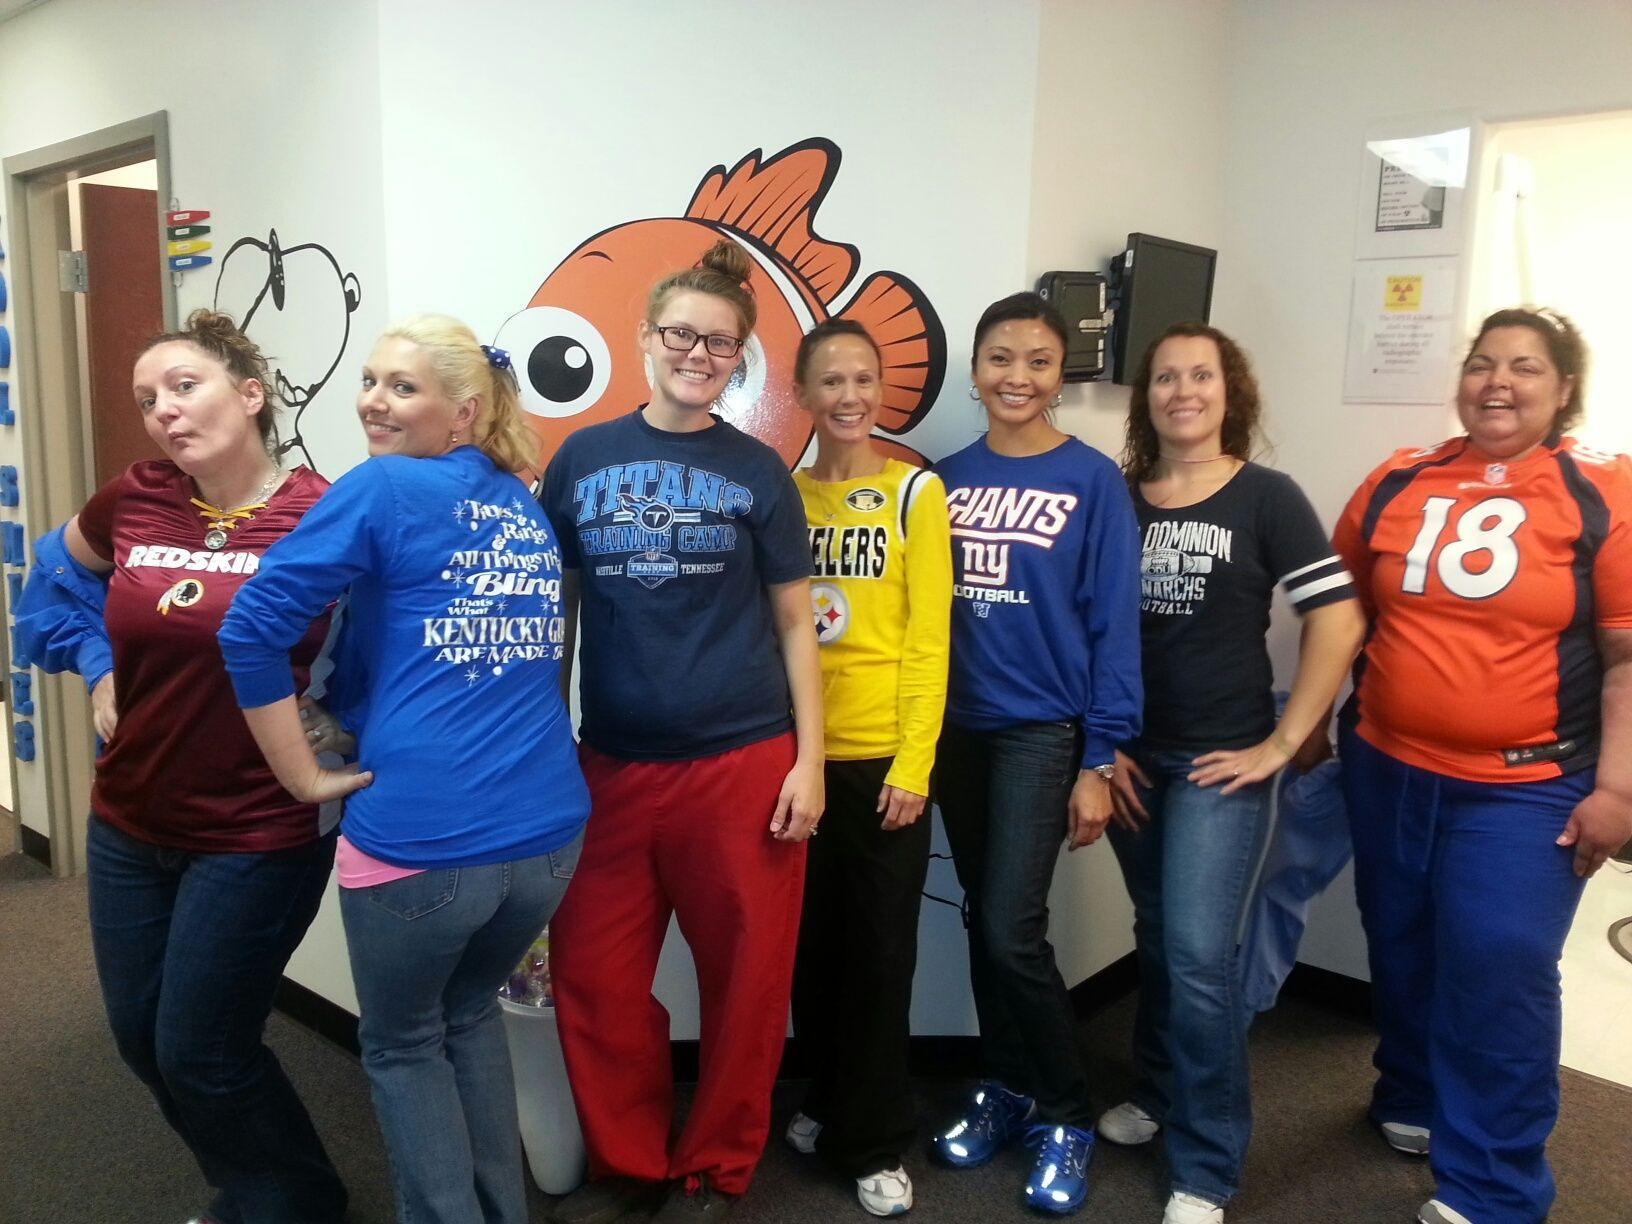 Our Spirited Va Beach Team On Favorite Jersey Day Who S Your Favorite Team Smileonshot Virginia Dentists Oralcare Fun Jersey Day Favorite Team Dentist